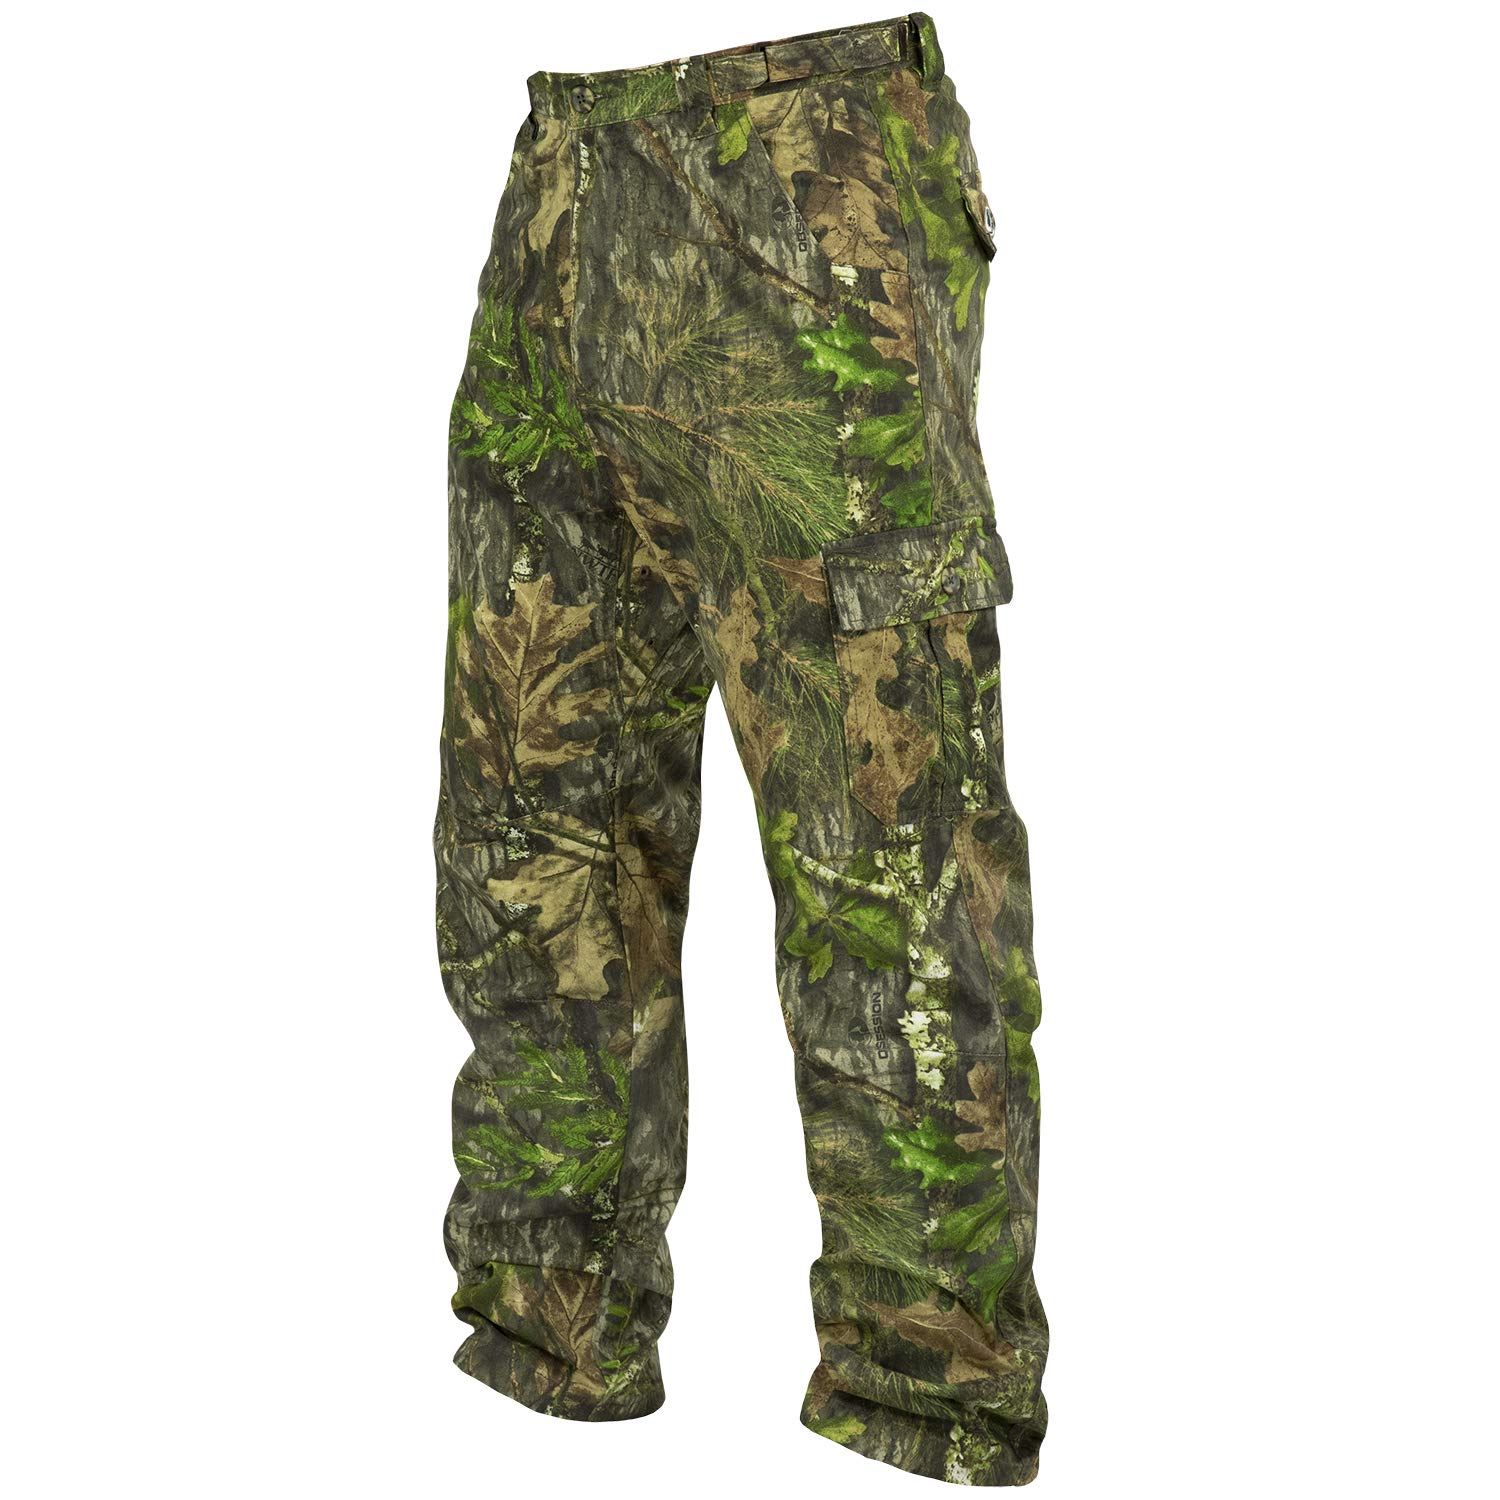 Mossy Oak Cotton Mill 2.0 Camo Hunting Pants for Men Camouflage Clothes by Mossy Oak